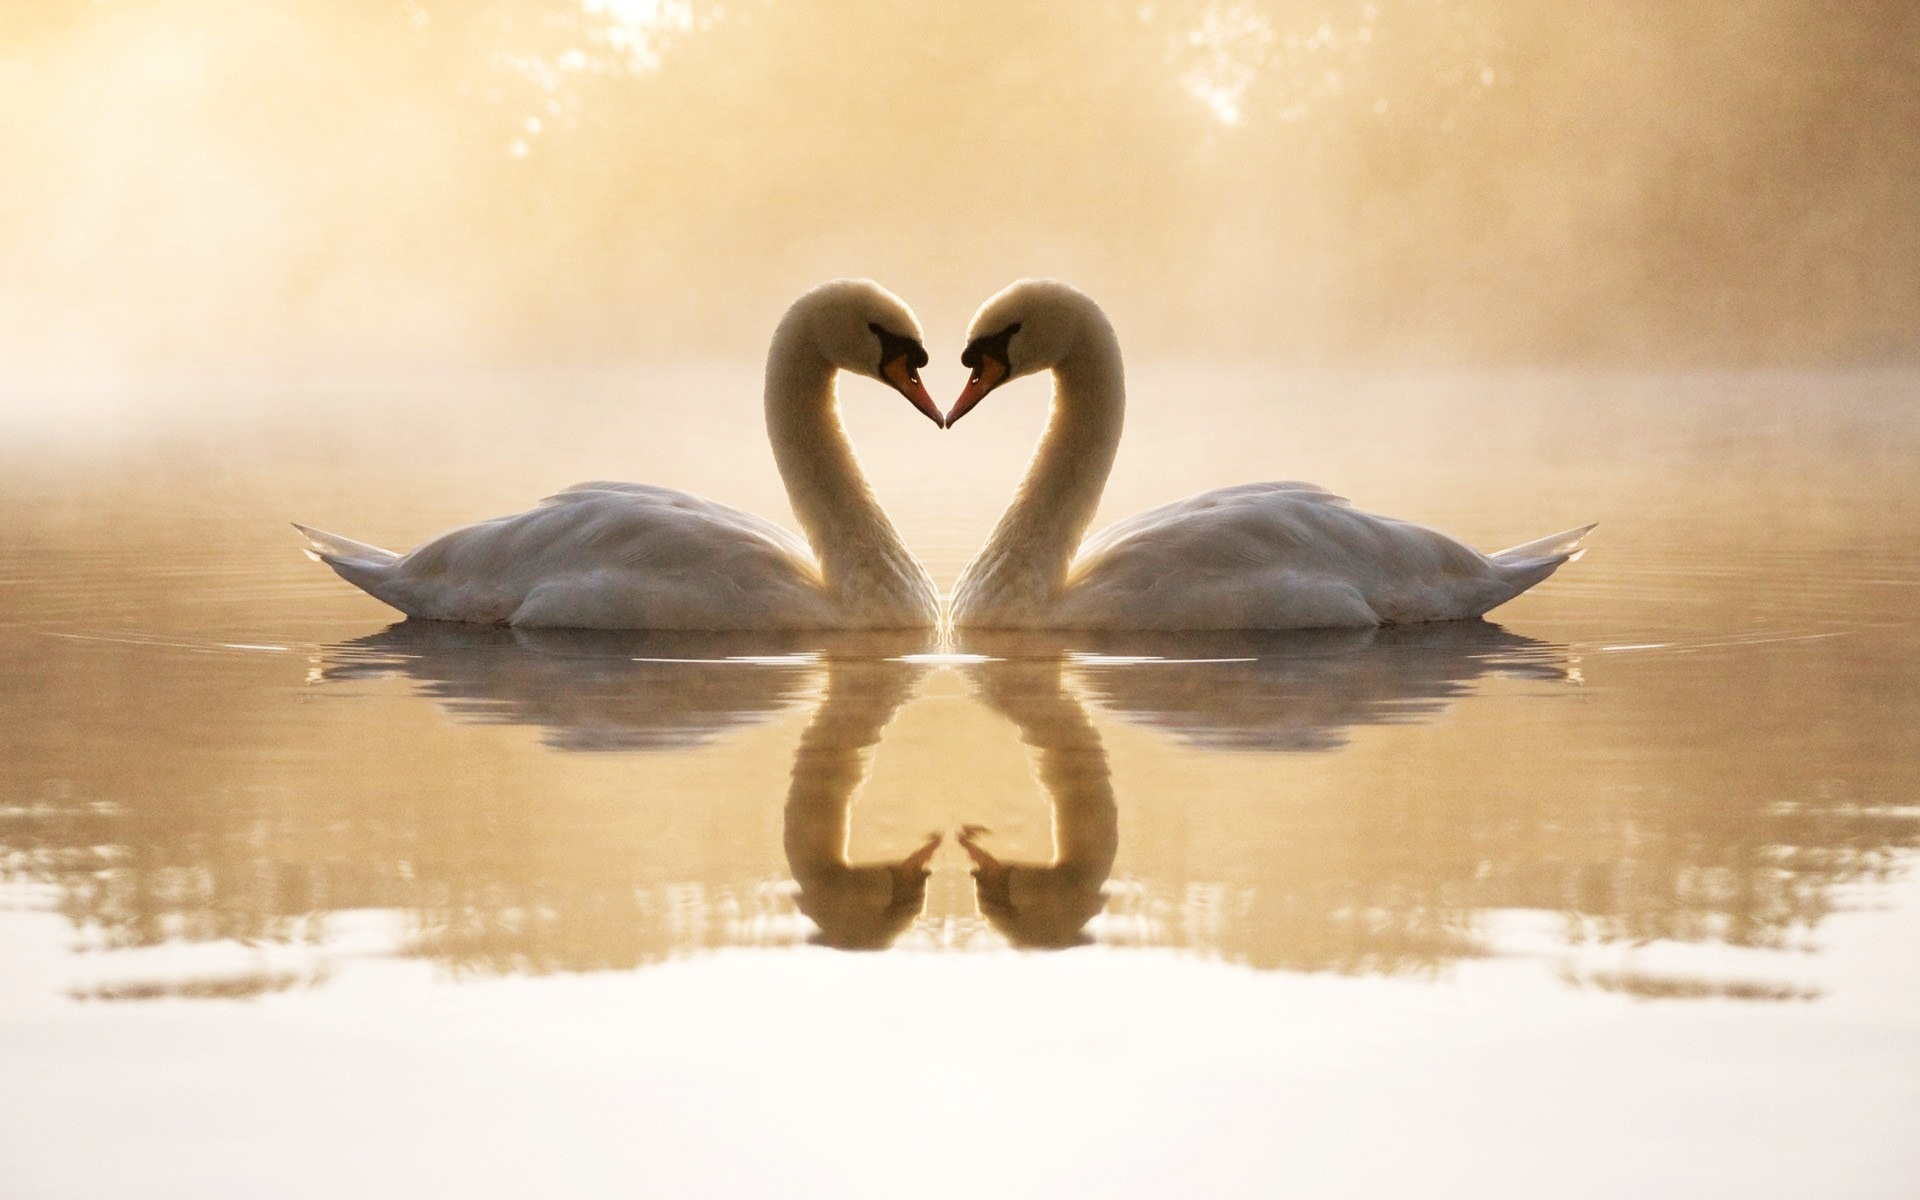 Loving Swans Wallpapers HD Wallpapers 1920x1200